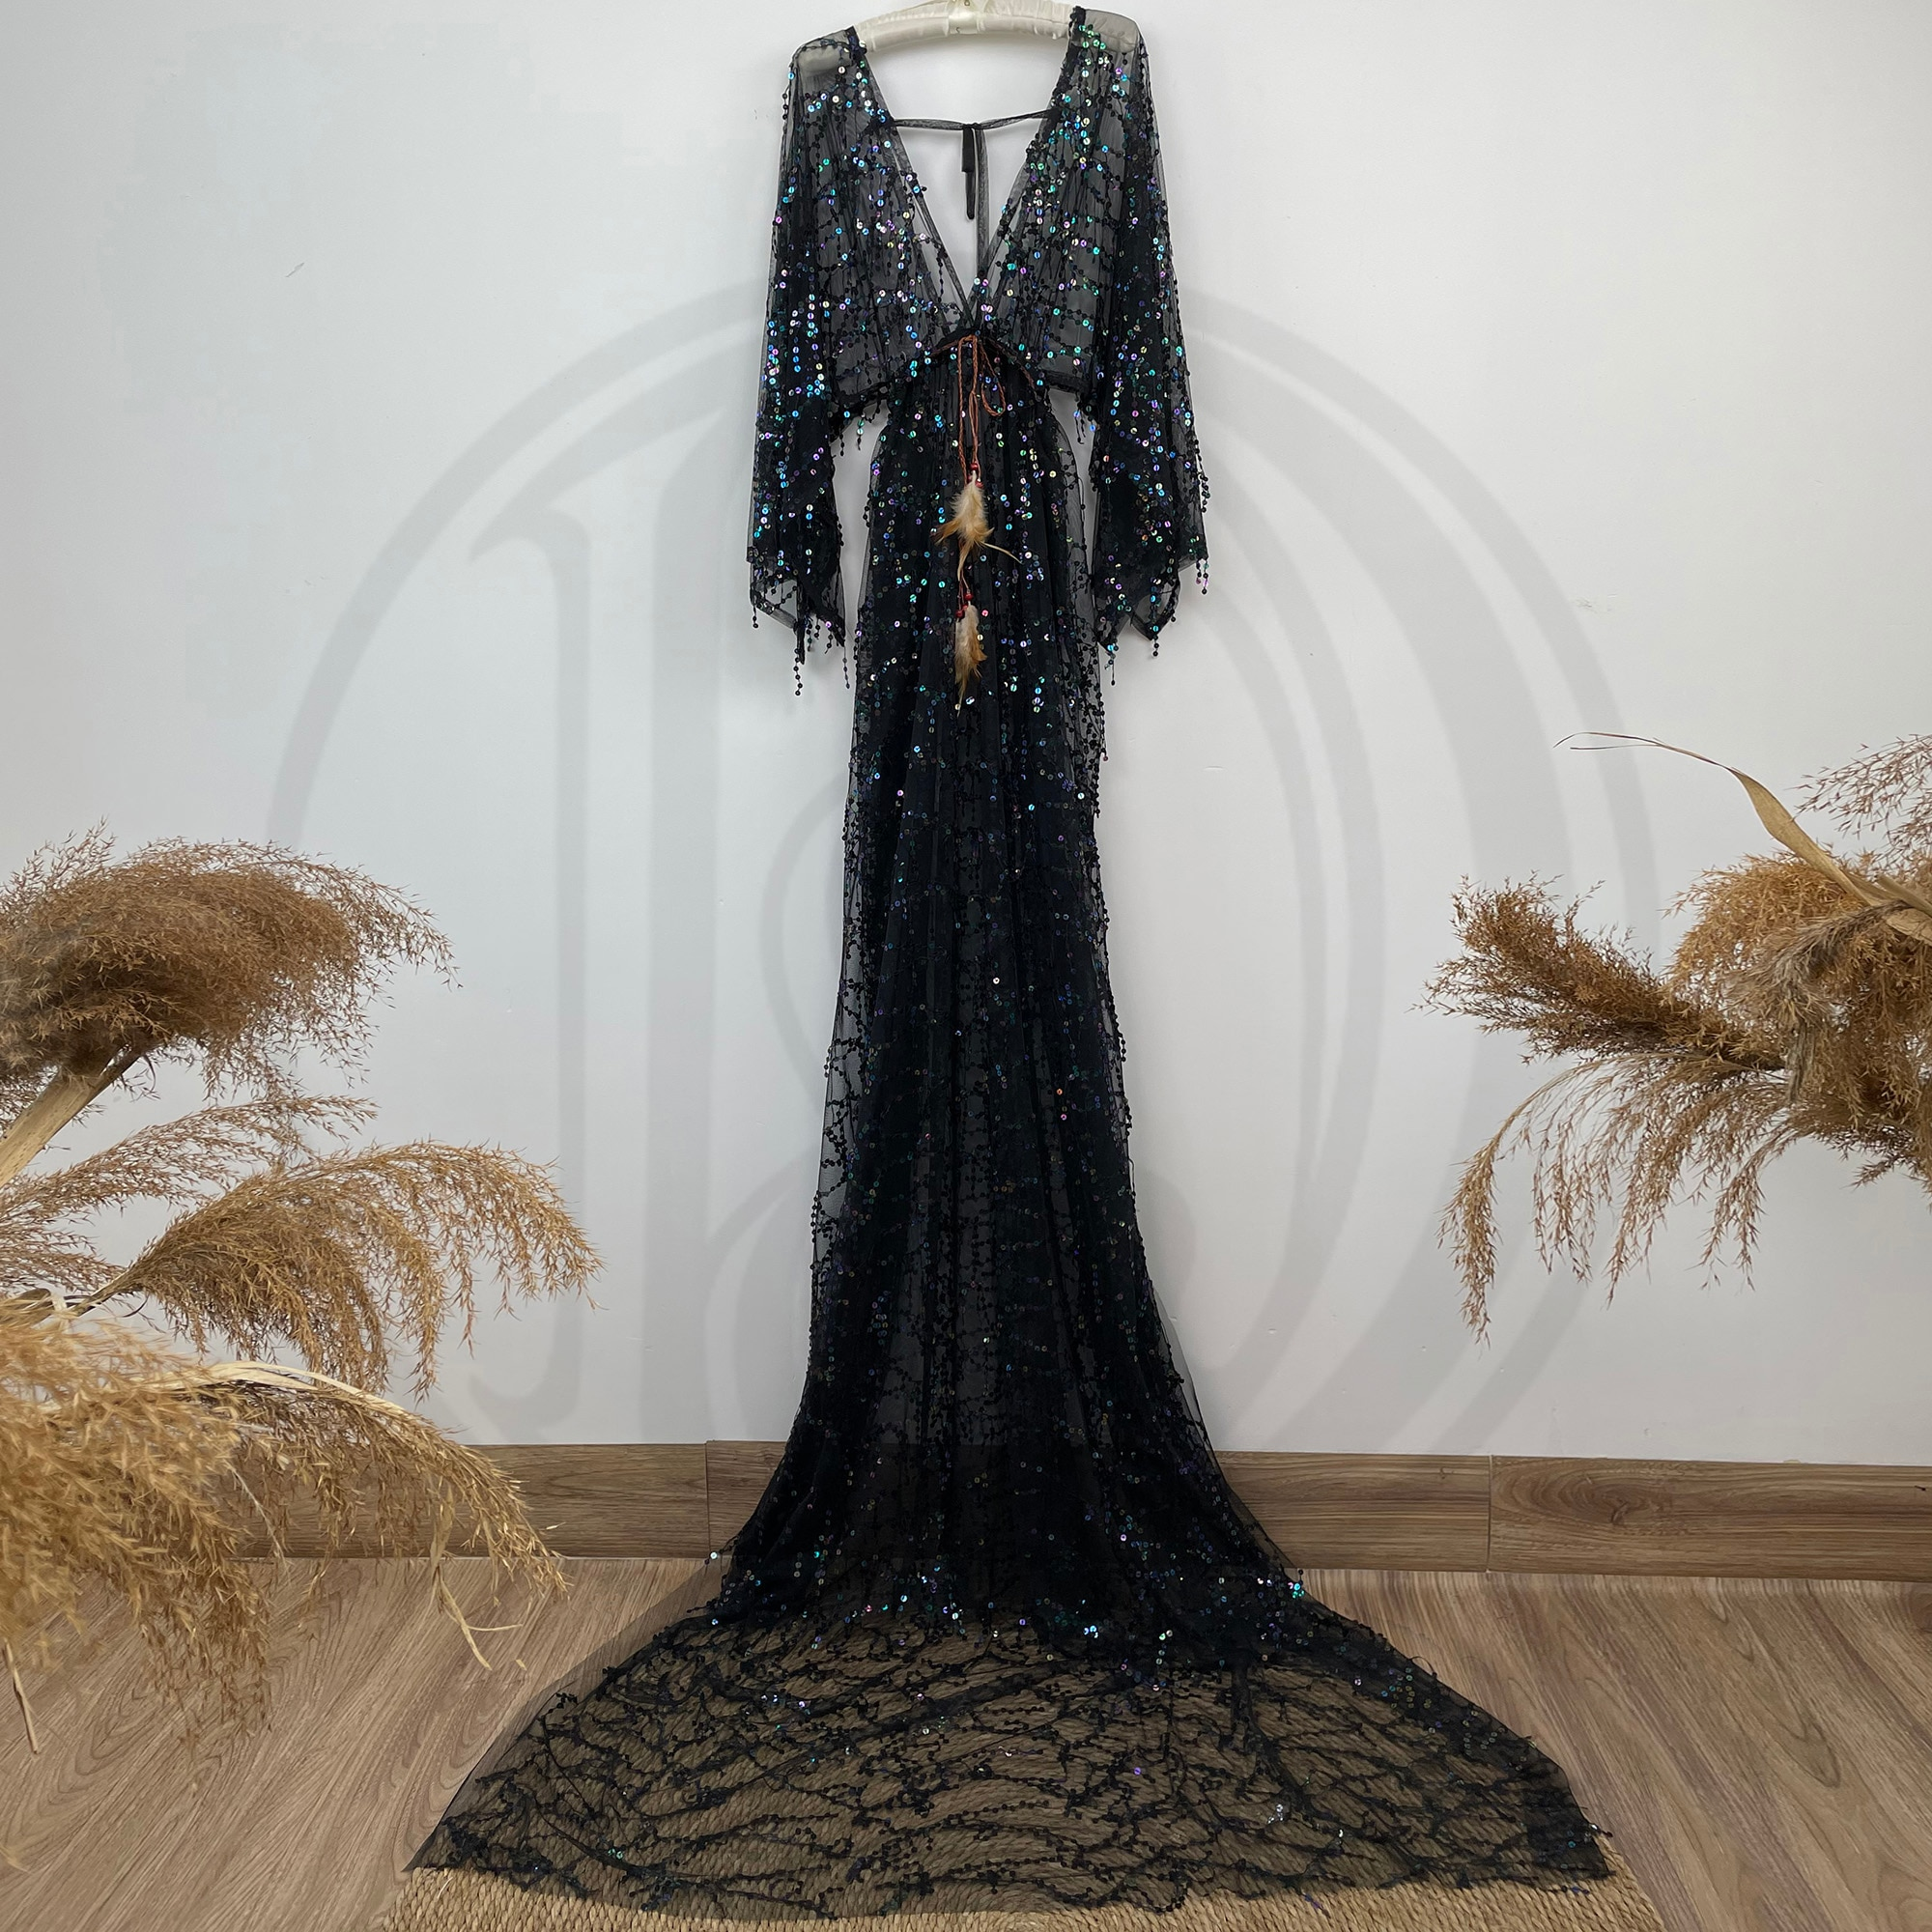 Spring Session Photography Sequent Dress Maternity Robe Pregnant Kaftan Photo Shoot  Boho Evening Party Sparkle Prom Women Cloth